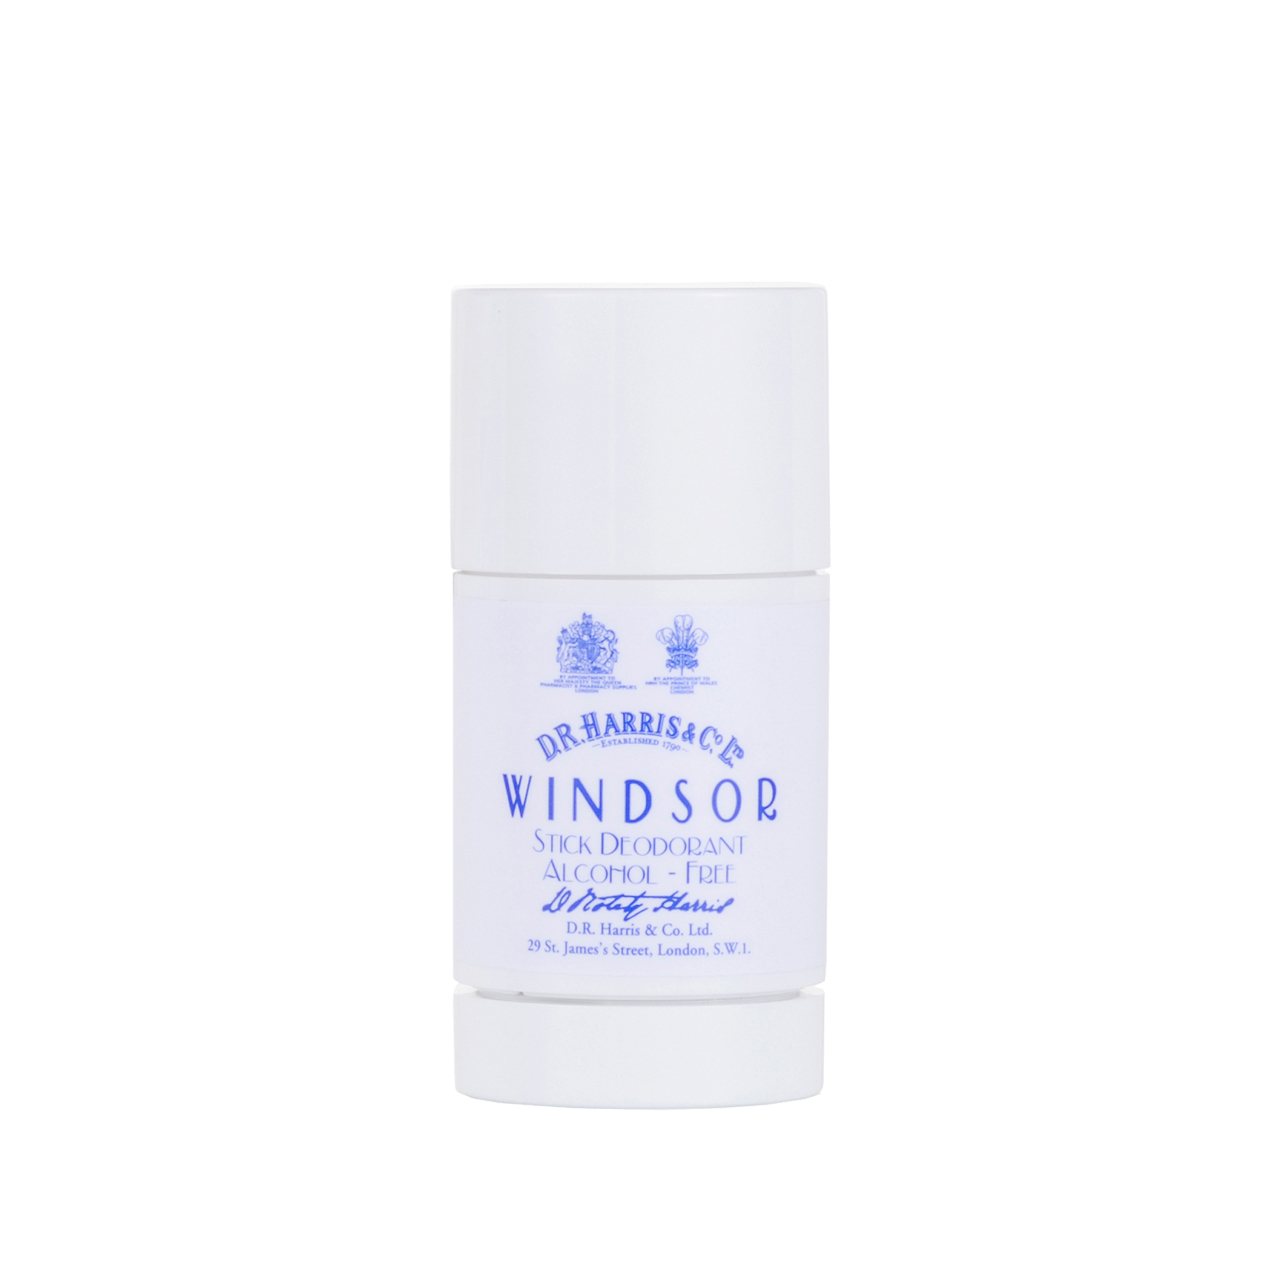 Windsor - Deodorant Stick Alcohol Free